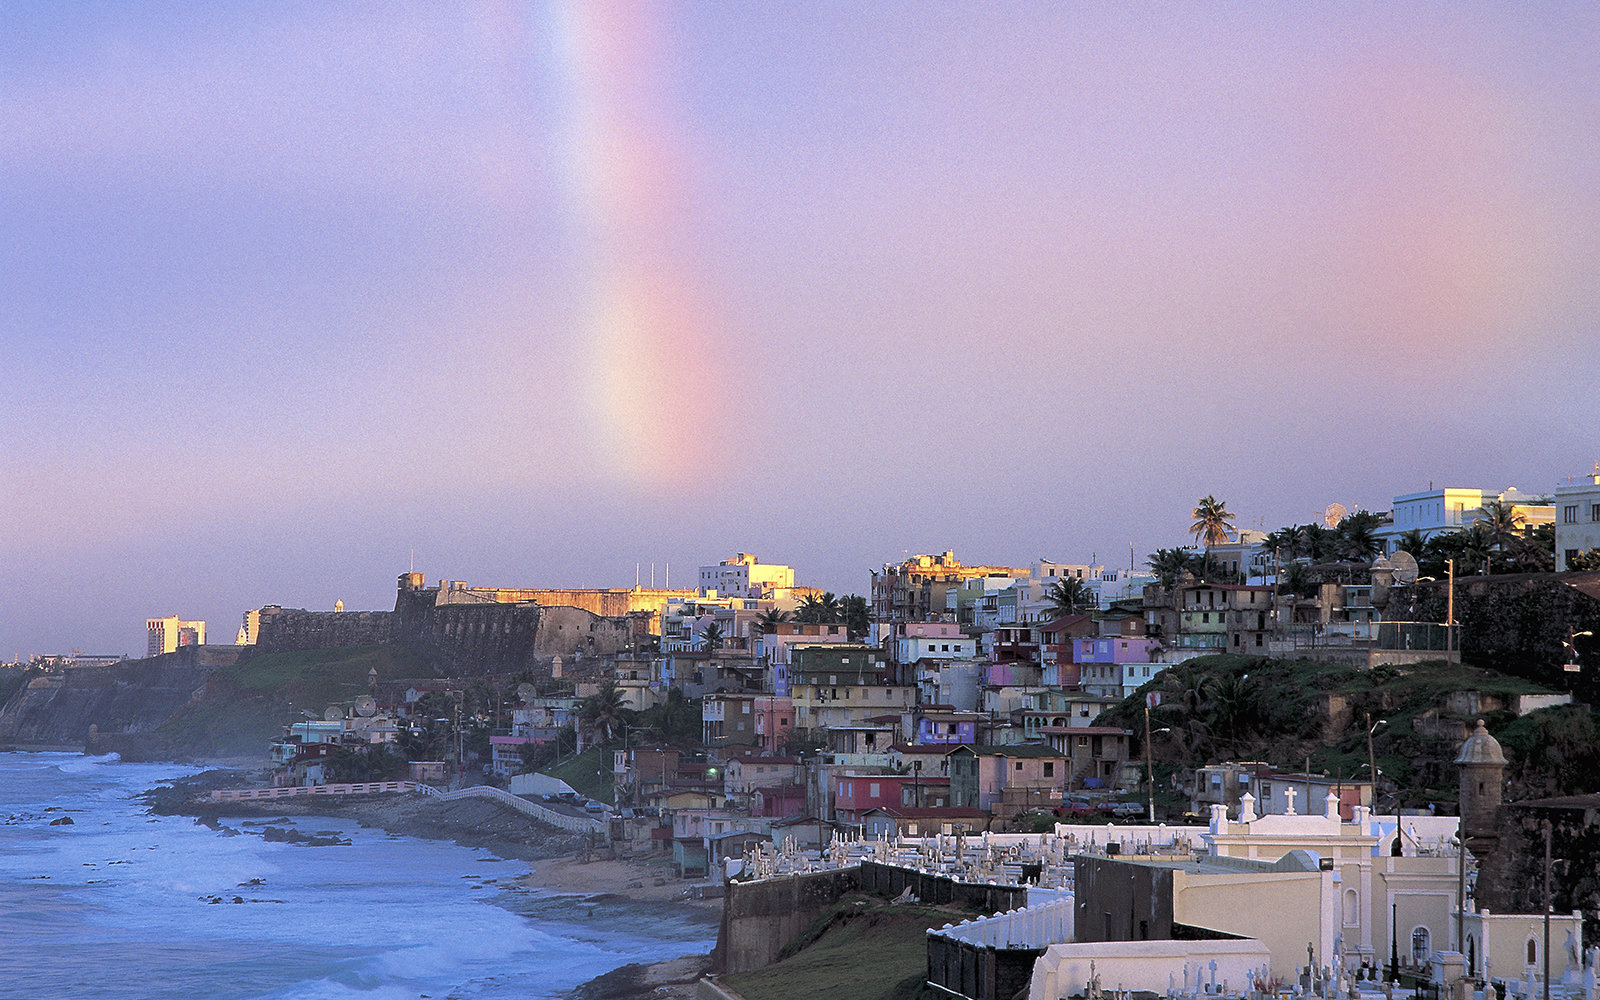 UNSPECIFIED - CIRCA 2005:  Puerto Rico - San Juan - Old city, UNESCO's World Heritage Site,1983 - The Pearl - Rainbow.  (Photo By DEA / S. AMANTINI/De Agostini/Getty Images)